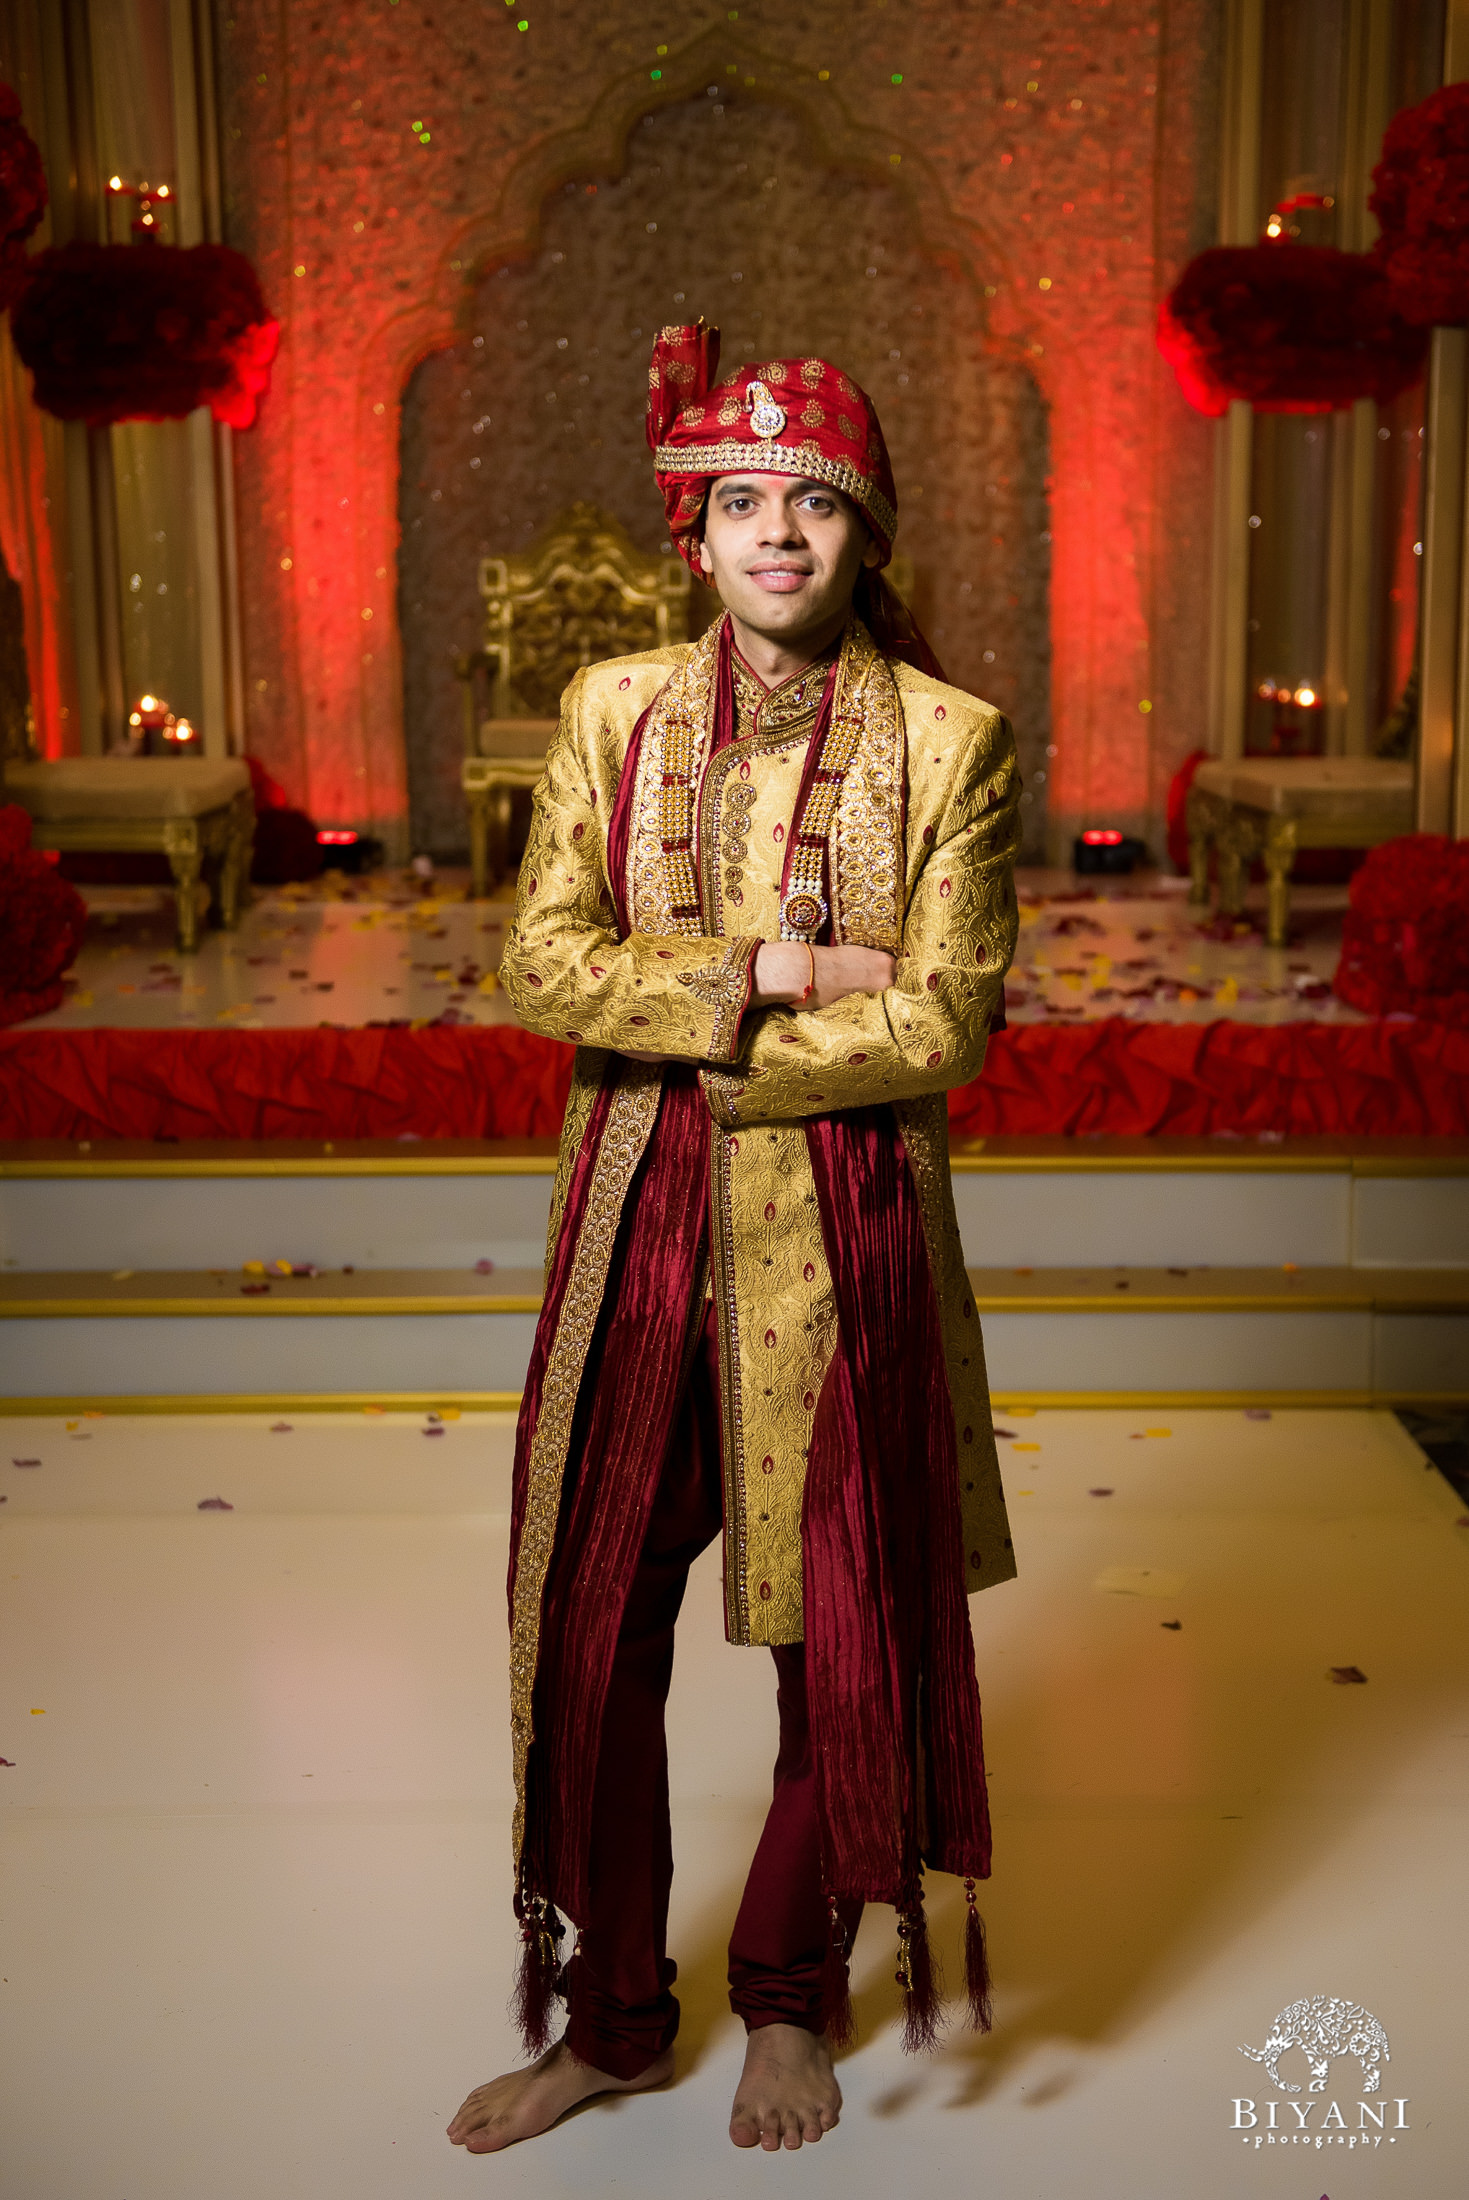 Groom poses in ceremony outfit